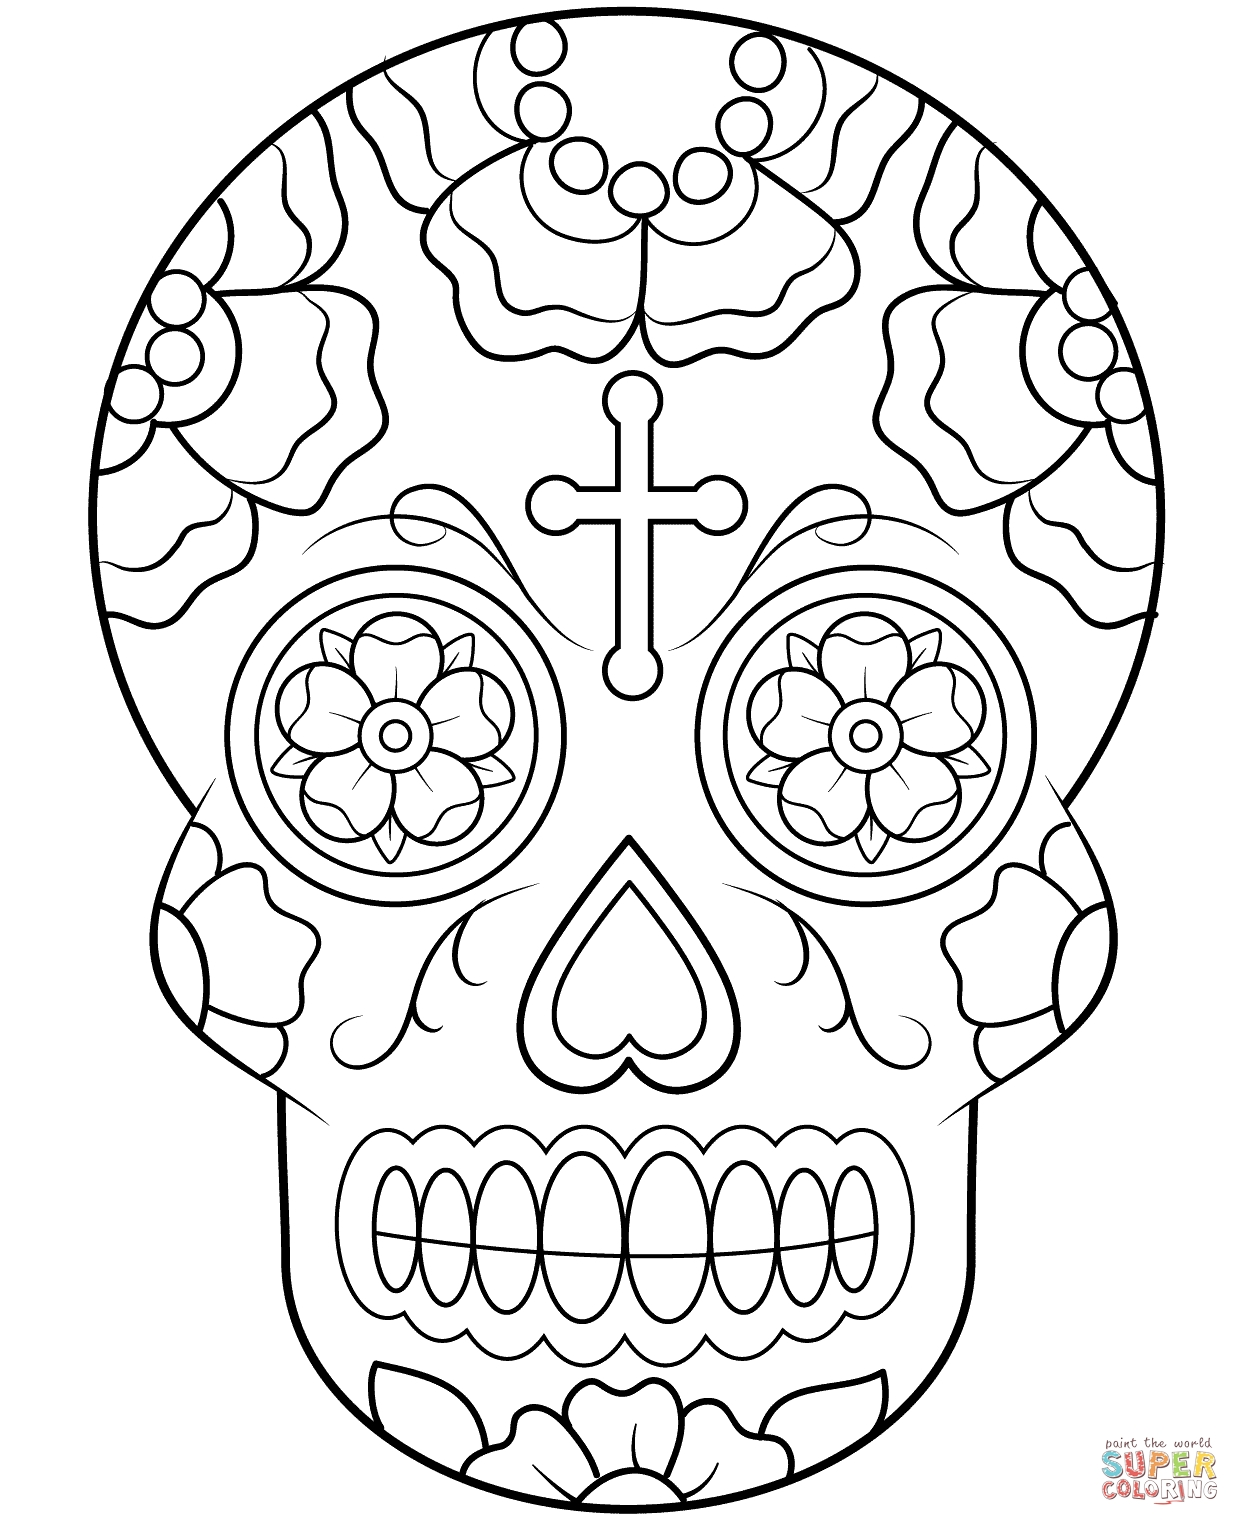 1240x1526 Best Of Crammed Skull Coloring Pages Sugar Skulls Printable